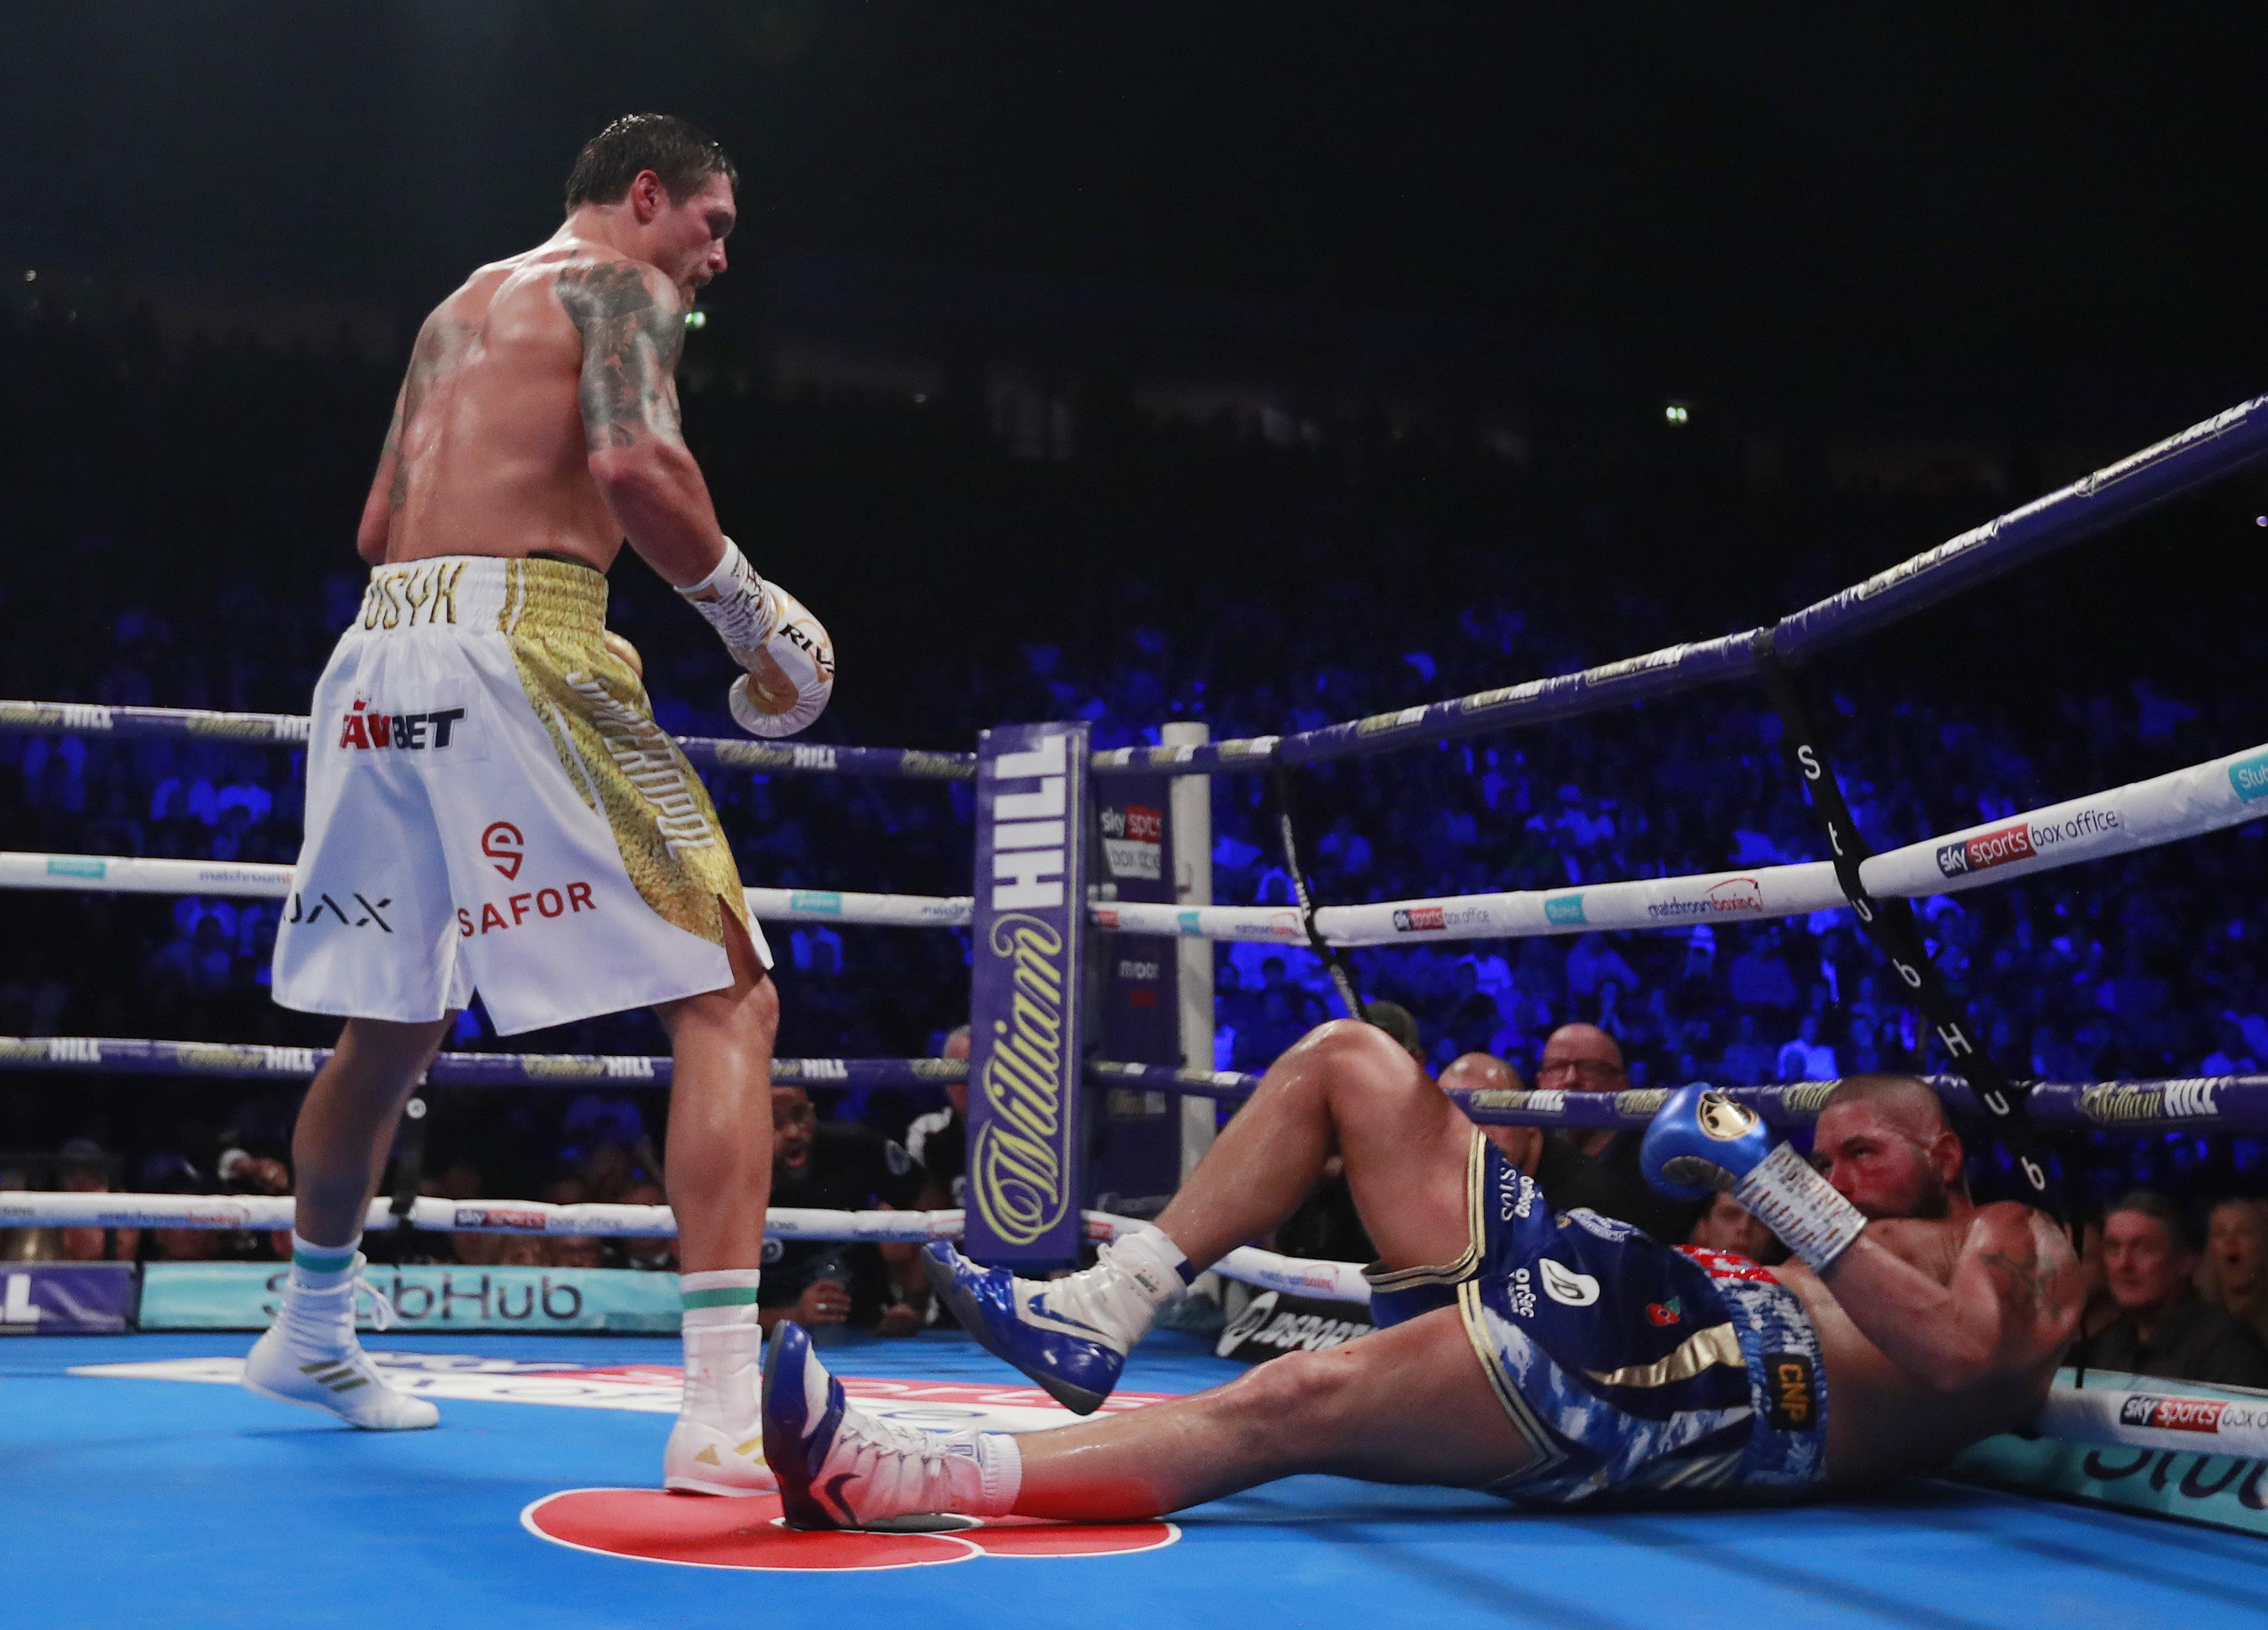 Usyk knocked Bellew out with a sharp left hook in round eight